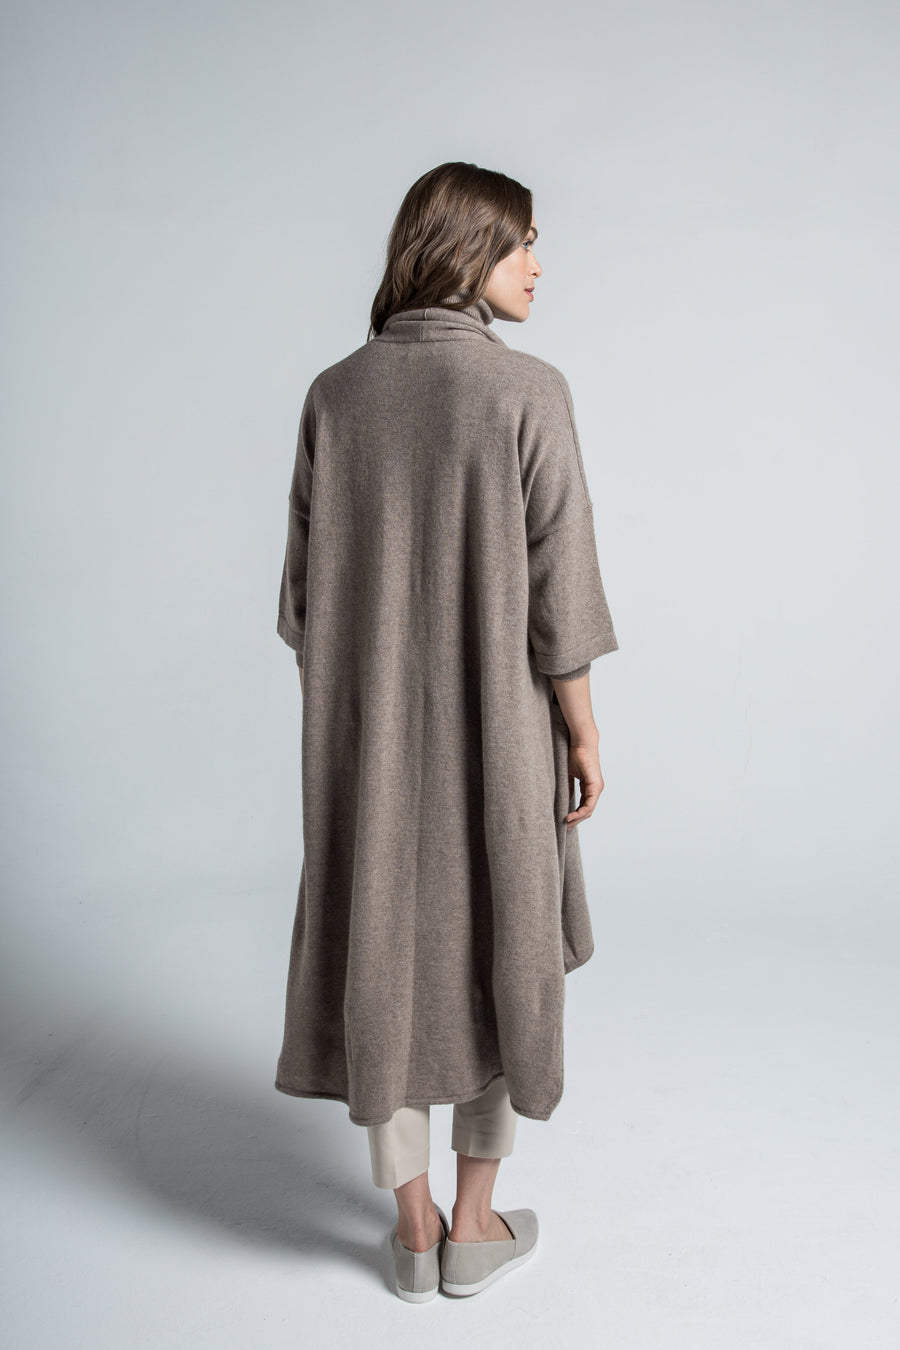 pine cashmere celine women's loose fit 100% pure organic cashmere cardigan coat in brown